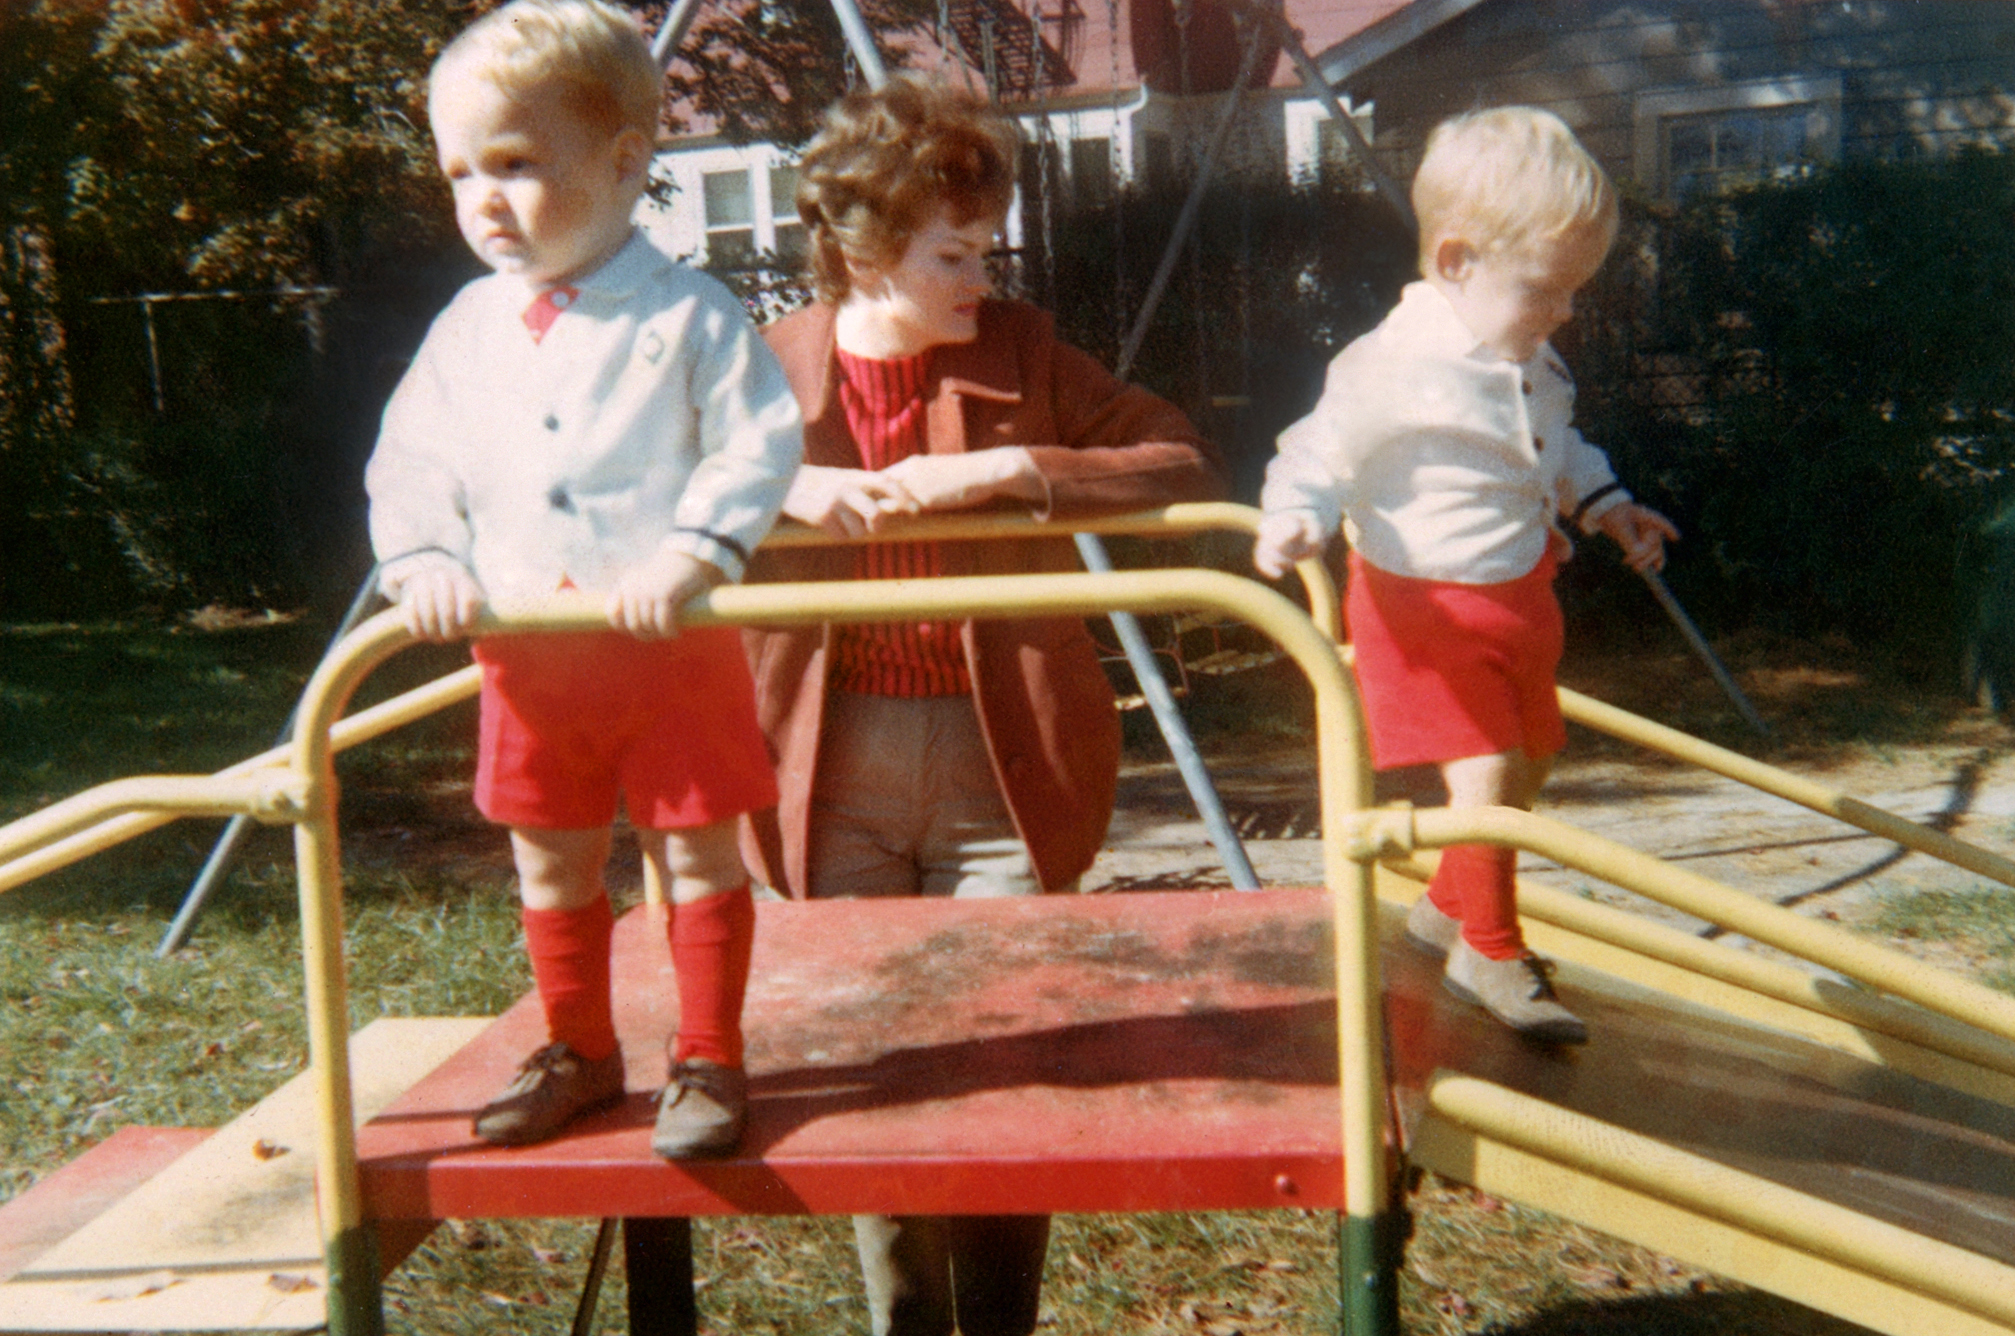 At age 1, Scott, left, and Mark with their mother, Patricia Kelly in Oct. 1965.